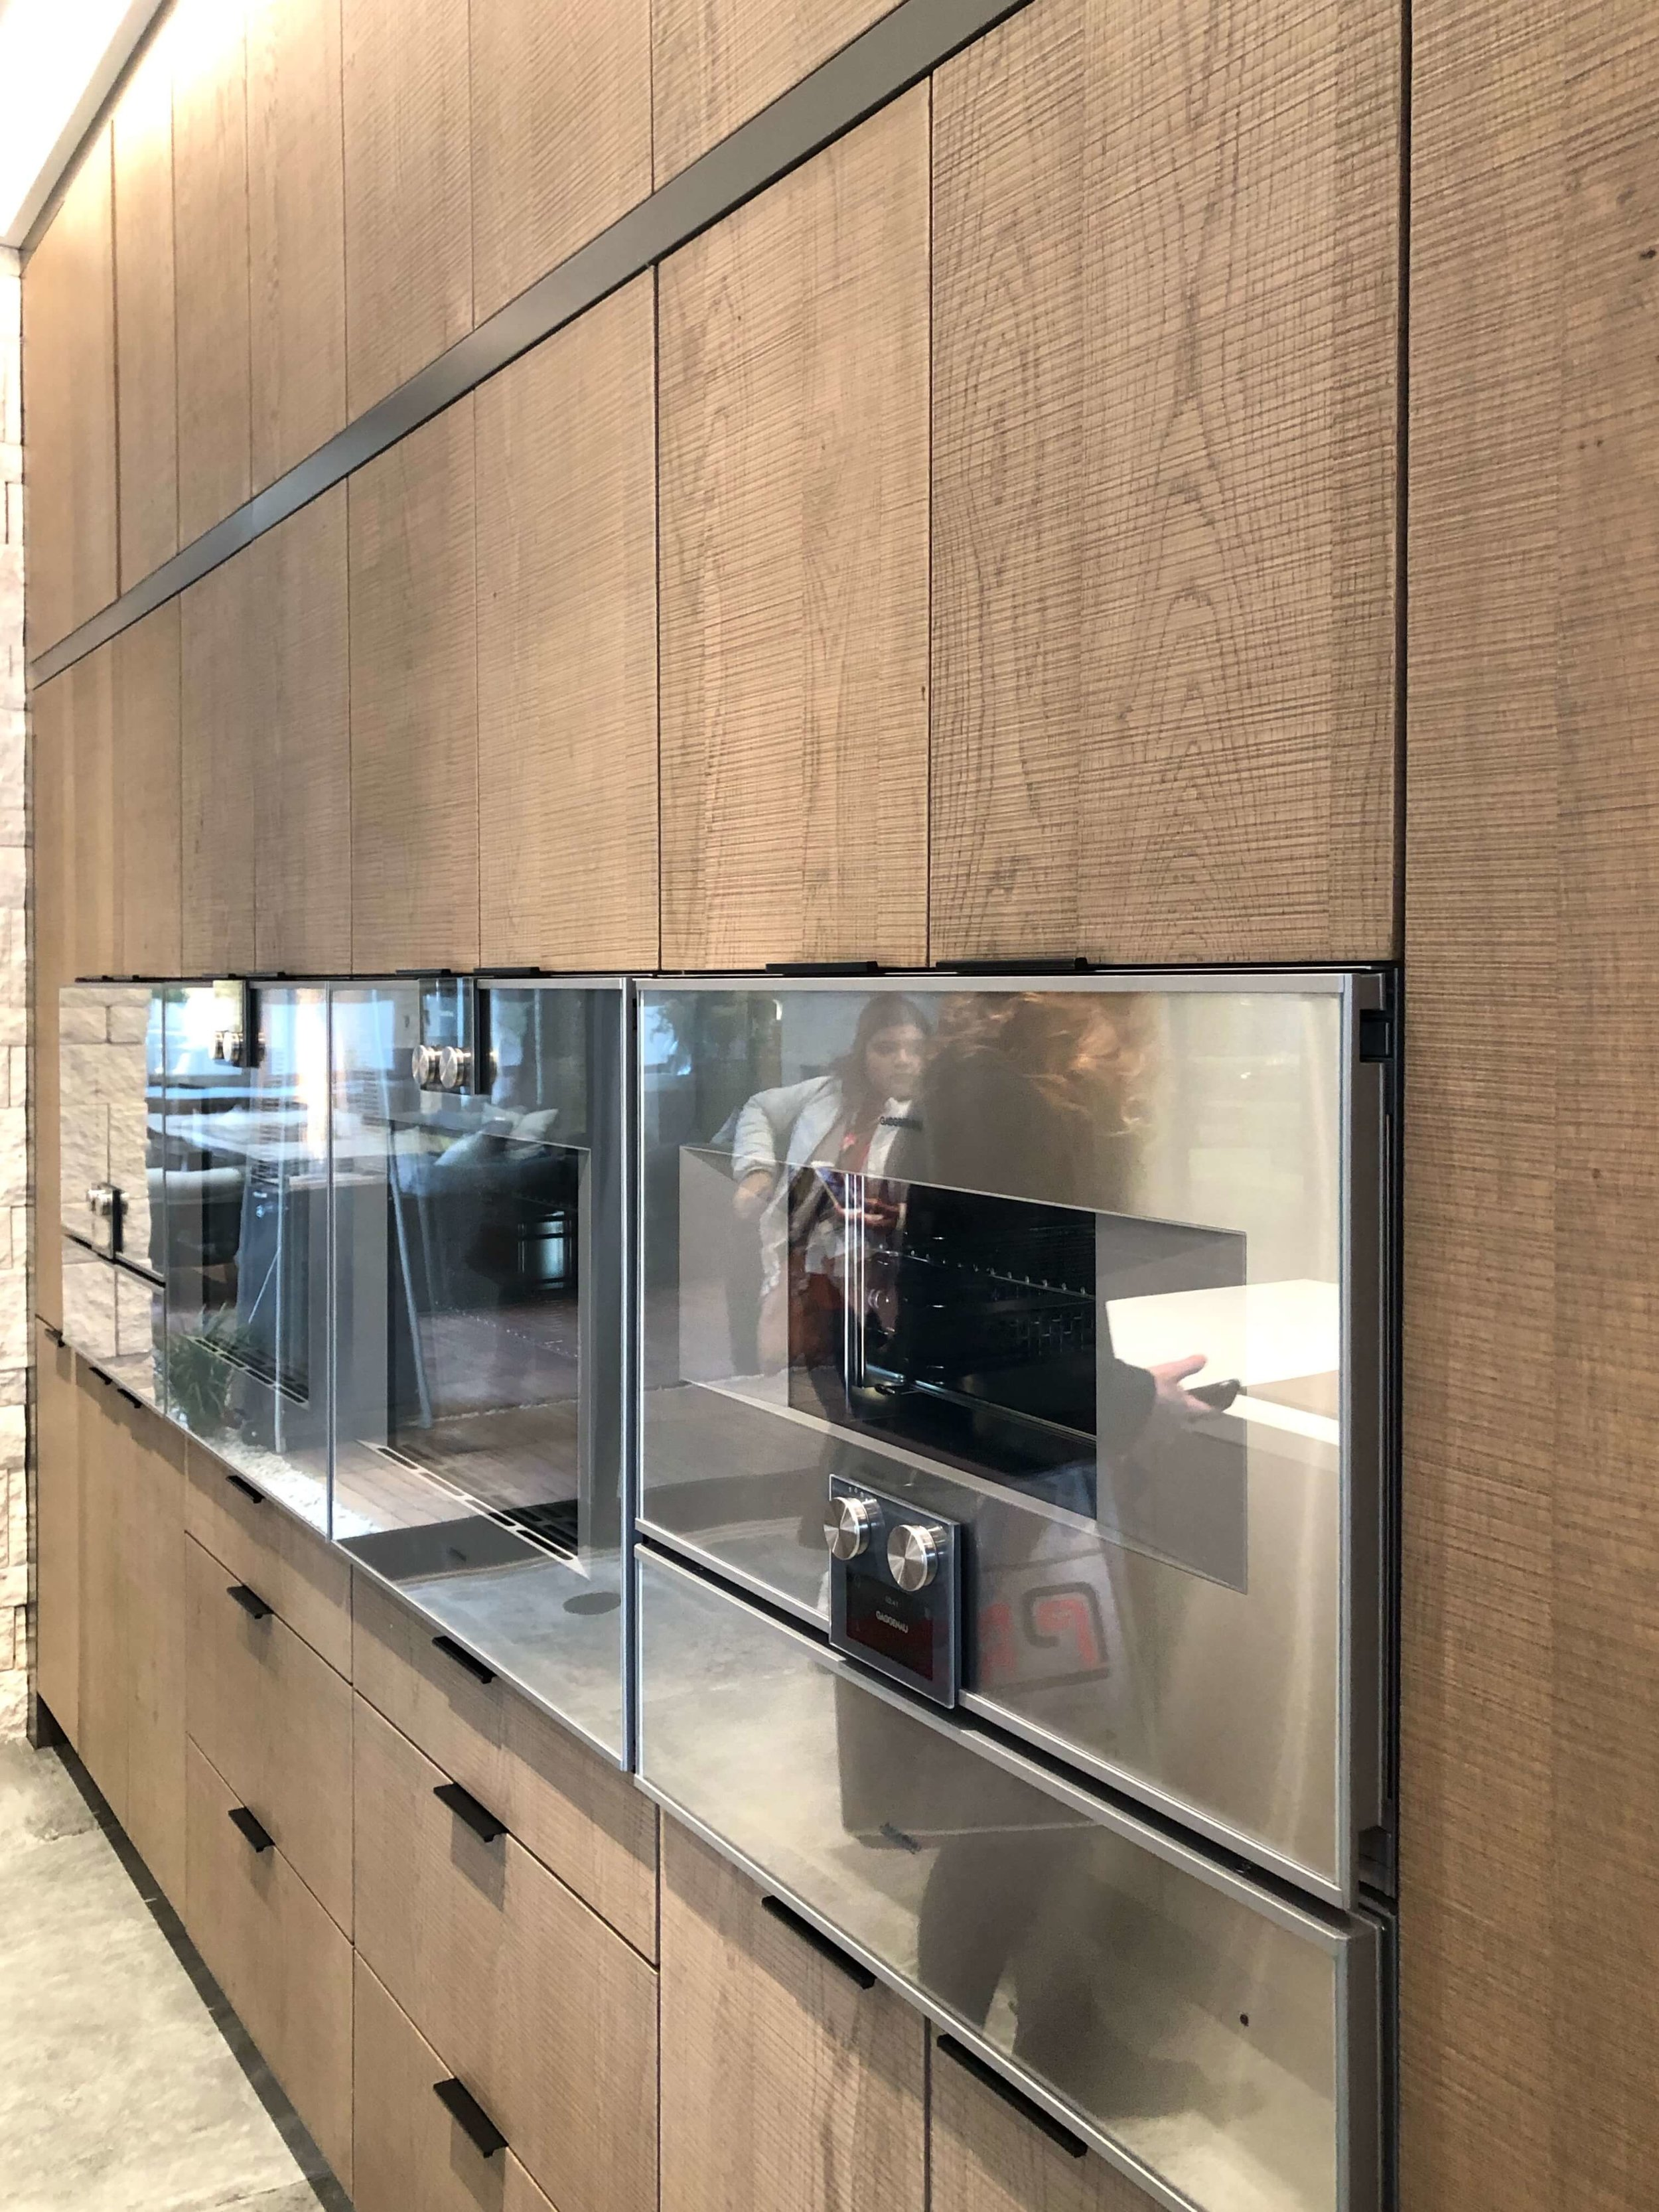 The wall of ovens and cabinetry meld together seamlessly in the kitchen of The New American Remodel 2019. #hometour #appliances #gaggenau #contemporaryhome